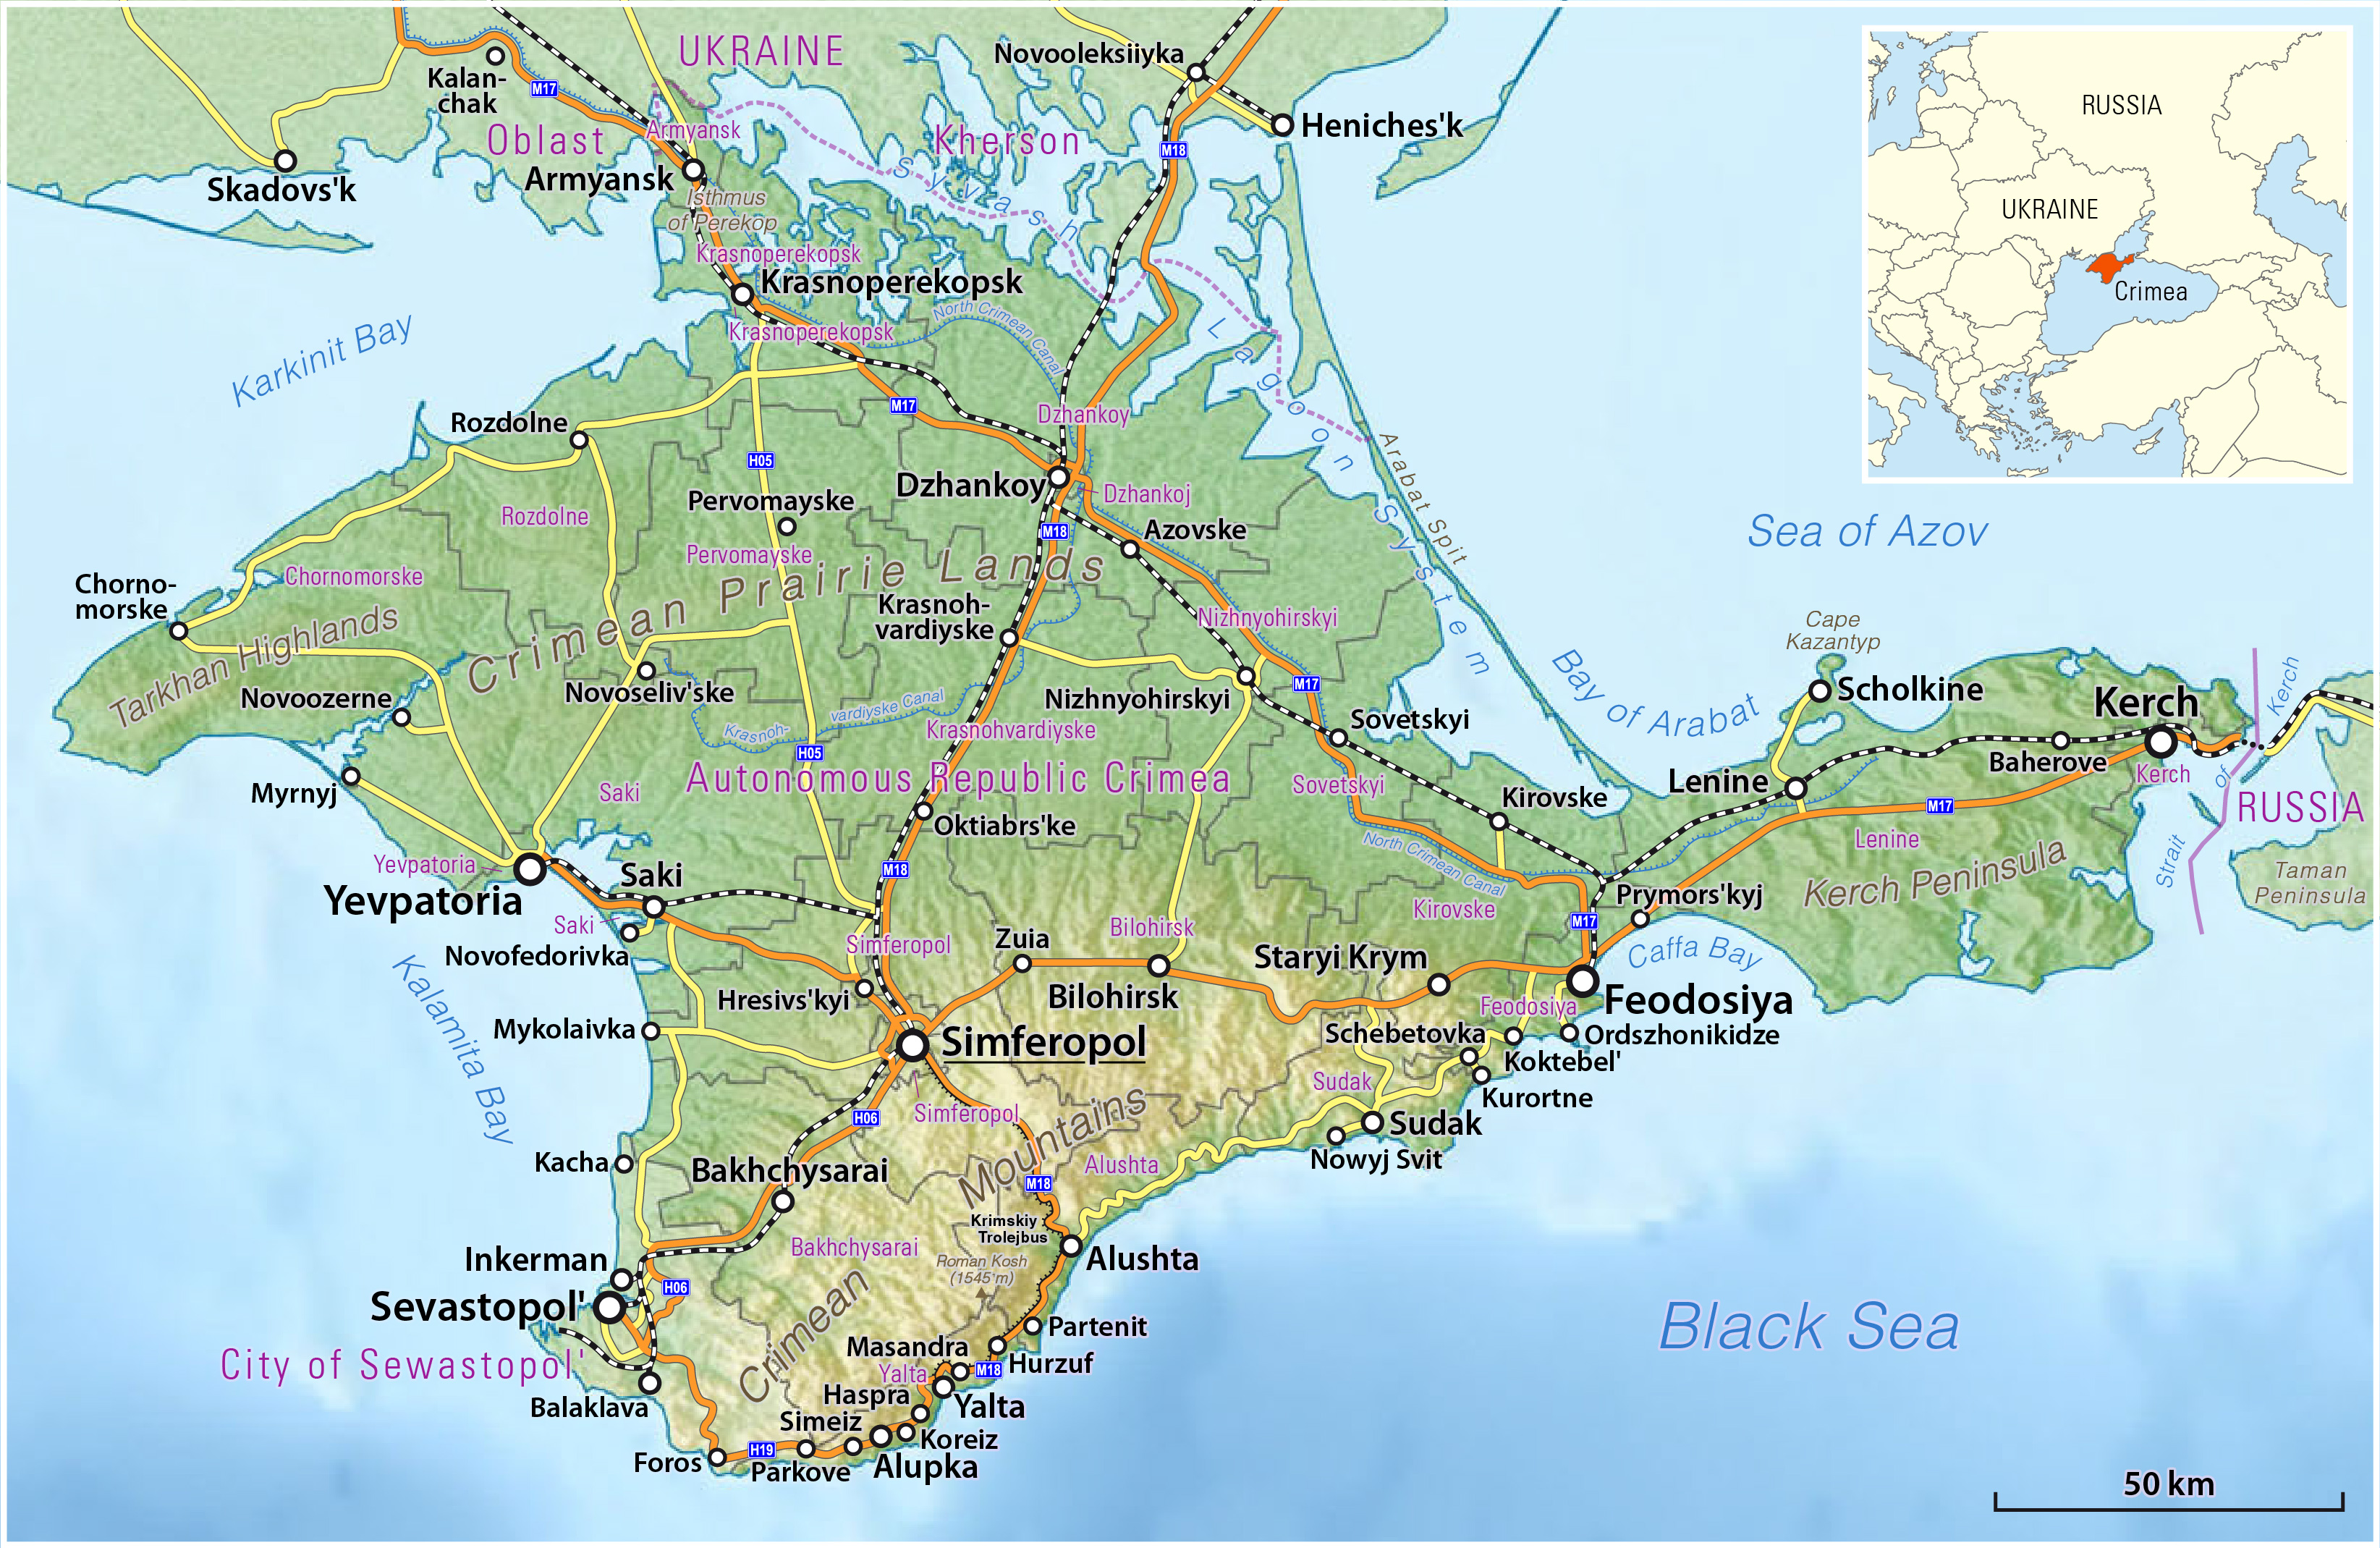 https://upload.wikimedia.org/wikipedia/commons/5/5f/Physical_map_of_the_Crimea.jpg